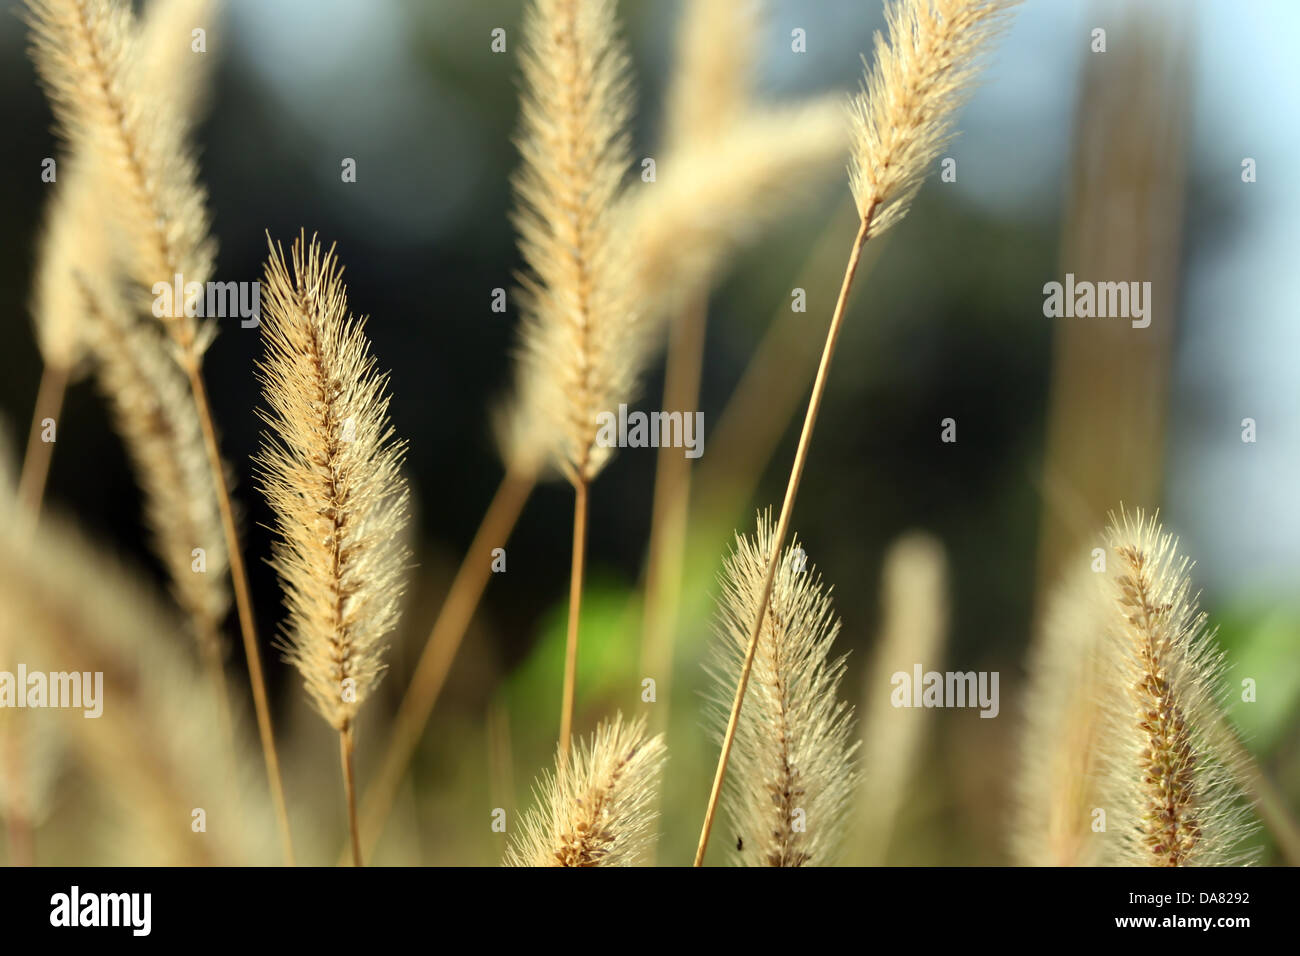 This is a weed, dry, dead plant, like some nature background. - Stock Image